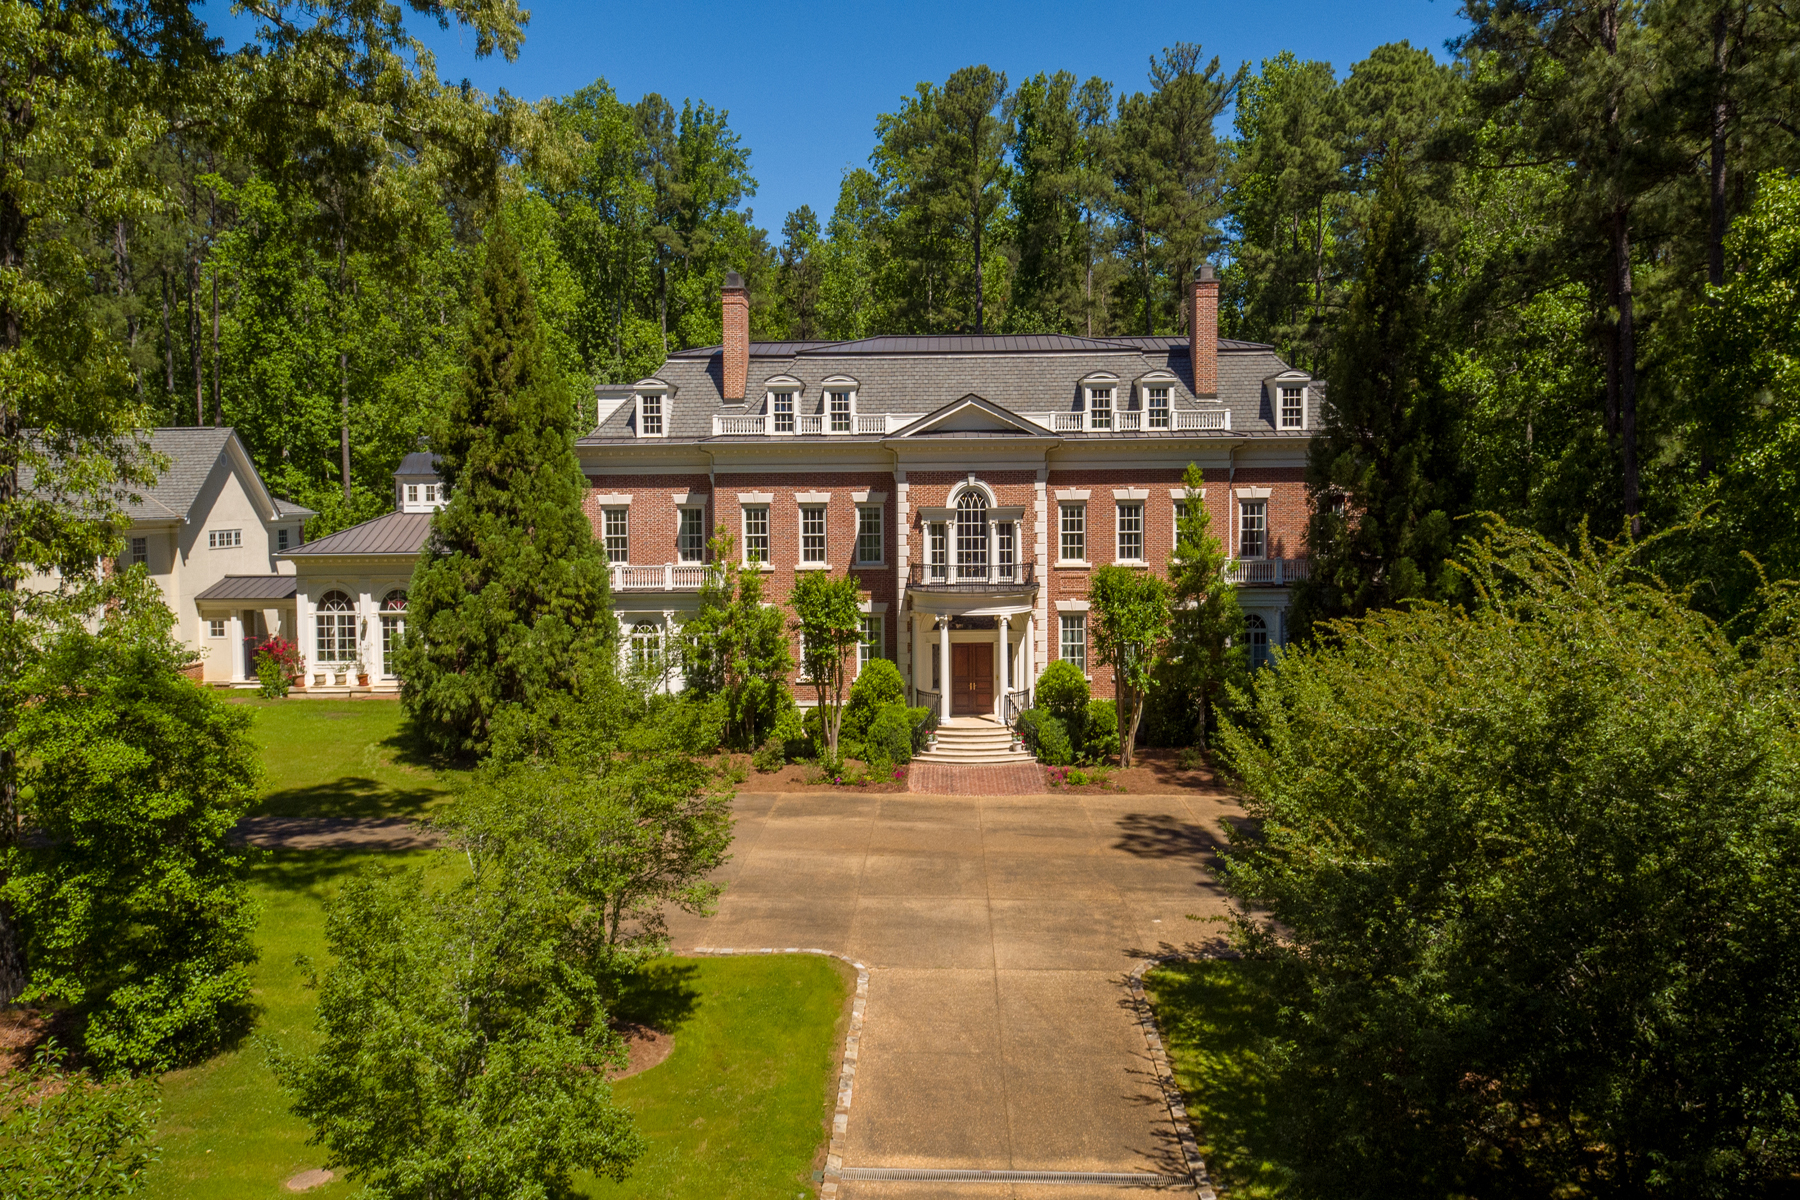 Moradia para Venda às Exquisite Private Estate, Architectural Gem In Peachtree City 321 Loring Lane Peachtree City, Geórgia 30269 Estados Unidos